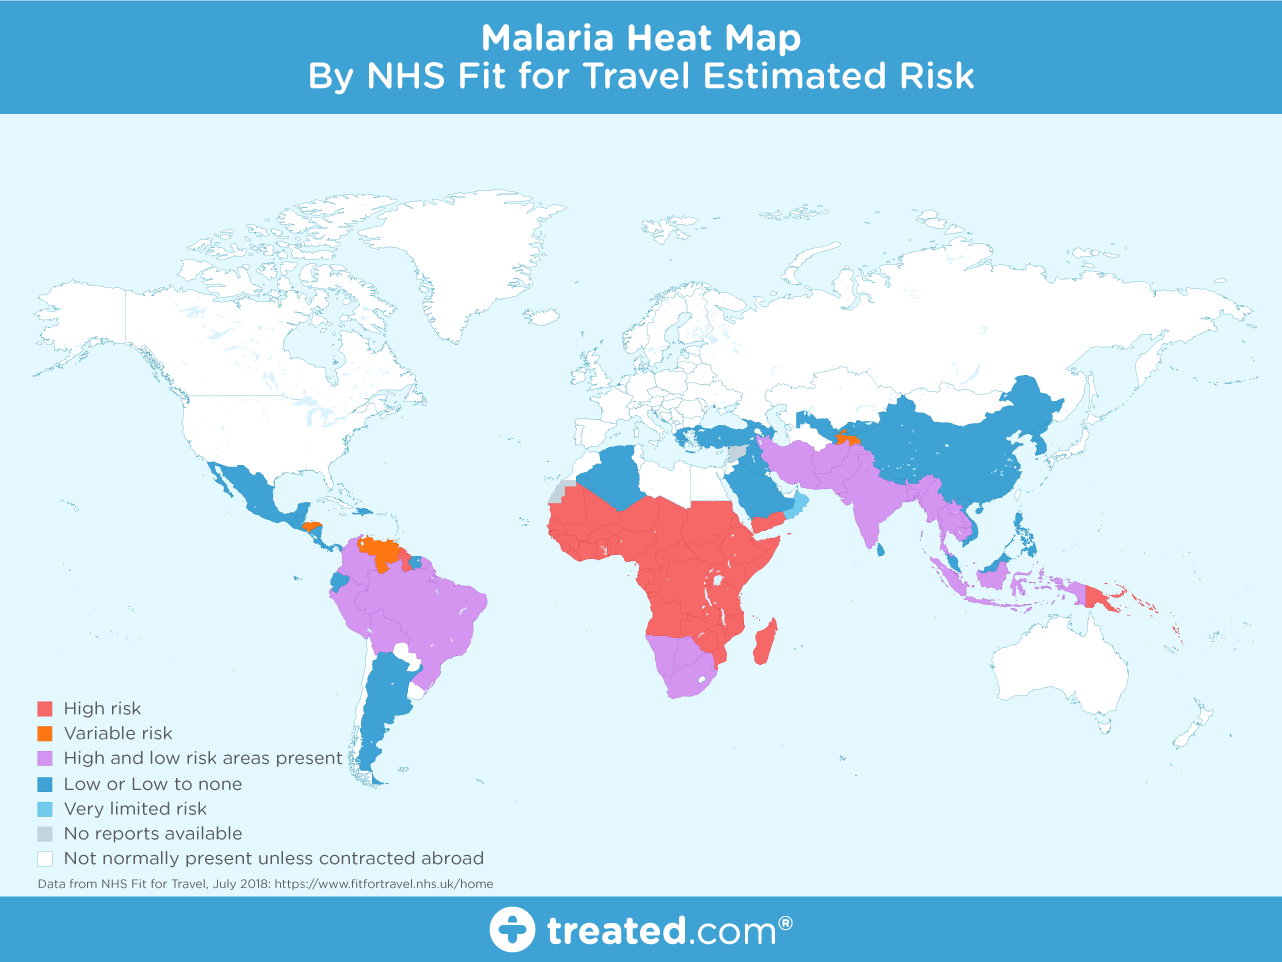 GLOBAL MALARIA AREAS